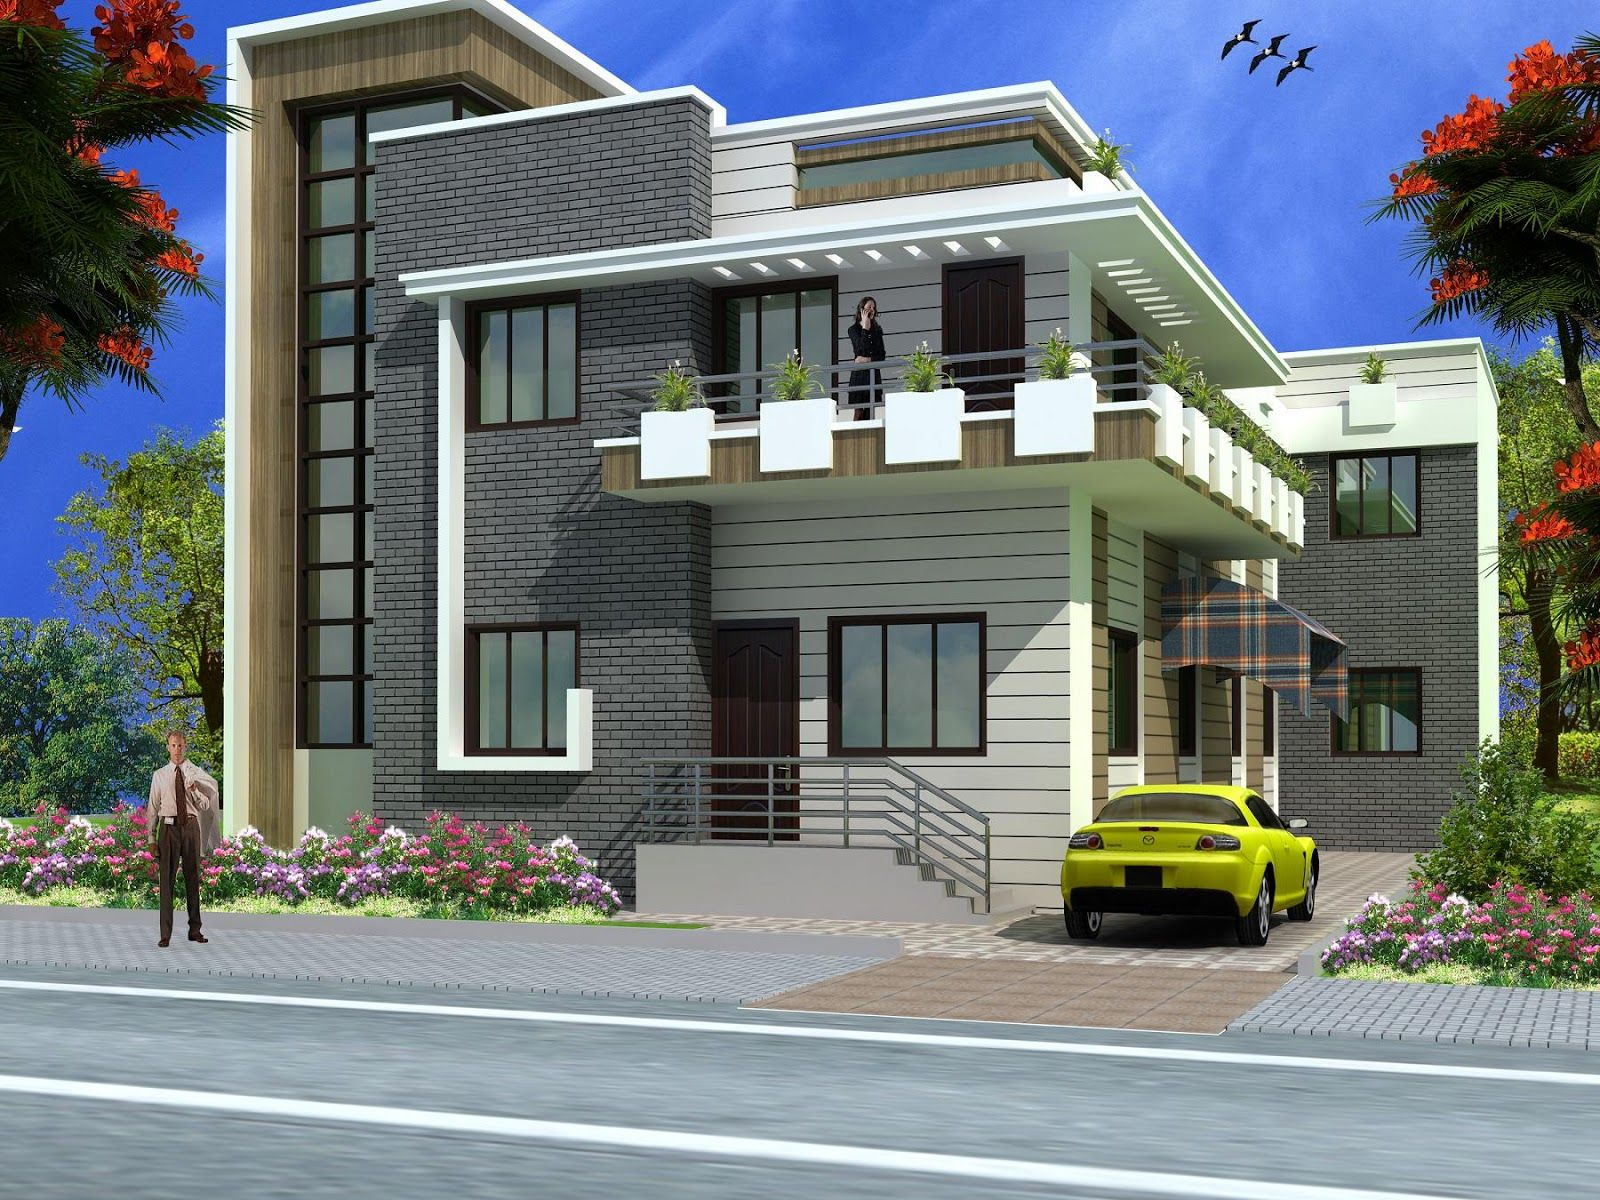 Architectural designs of indian houses pics pinterest for Free home designs india